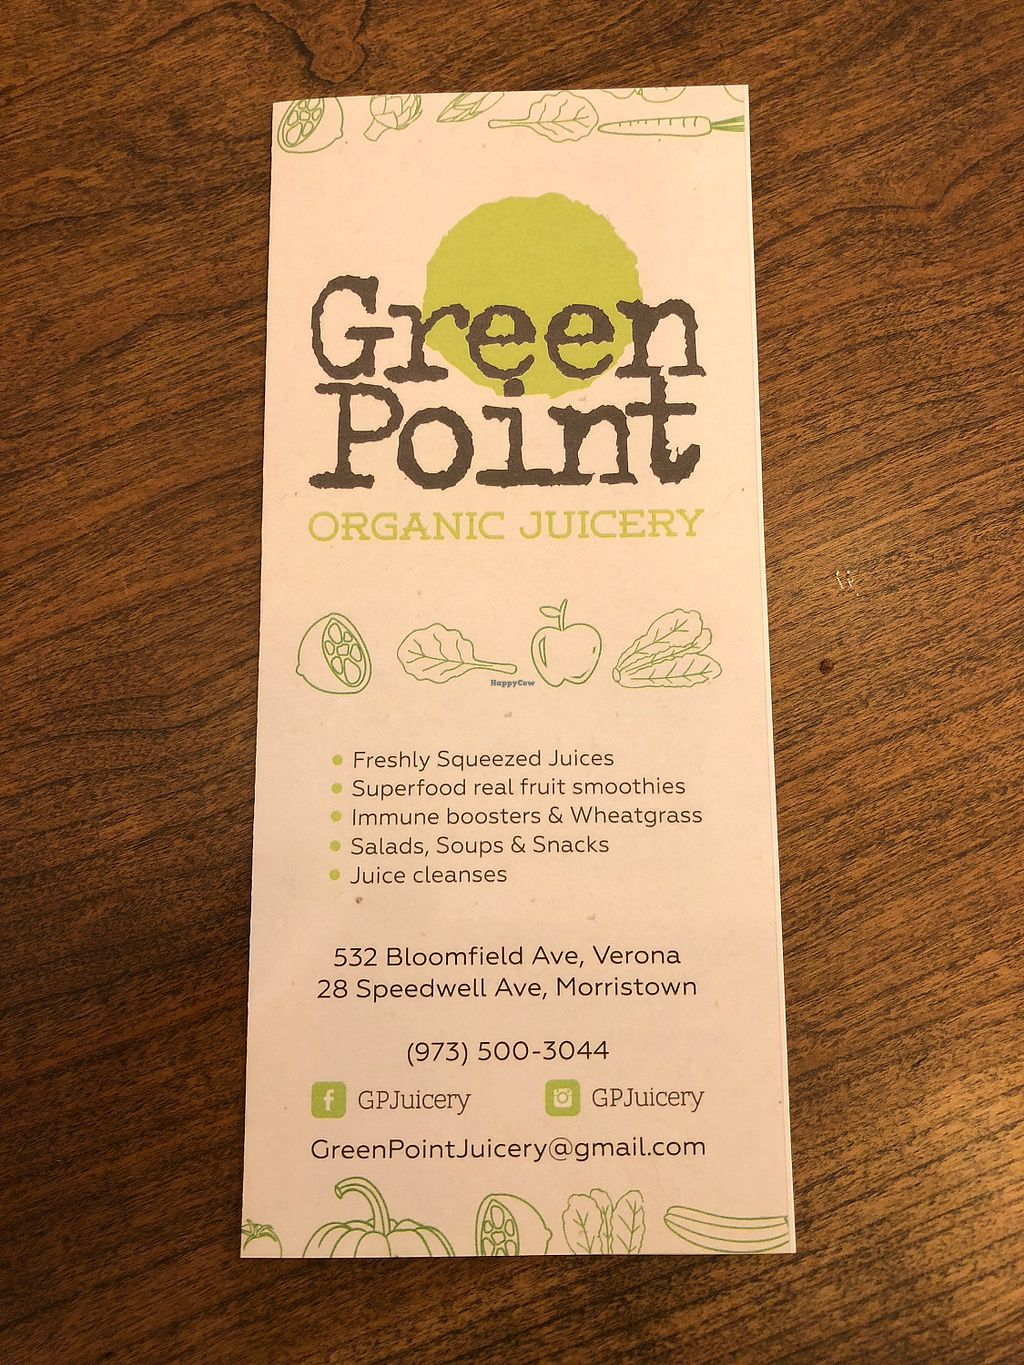 Green Point Juicery - Morristown New Jersey Restaurant